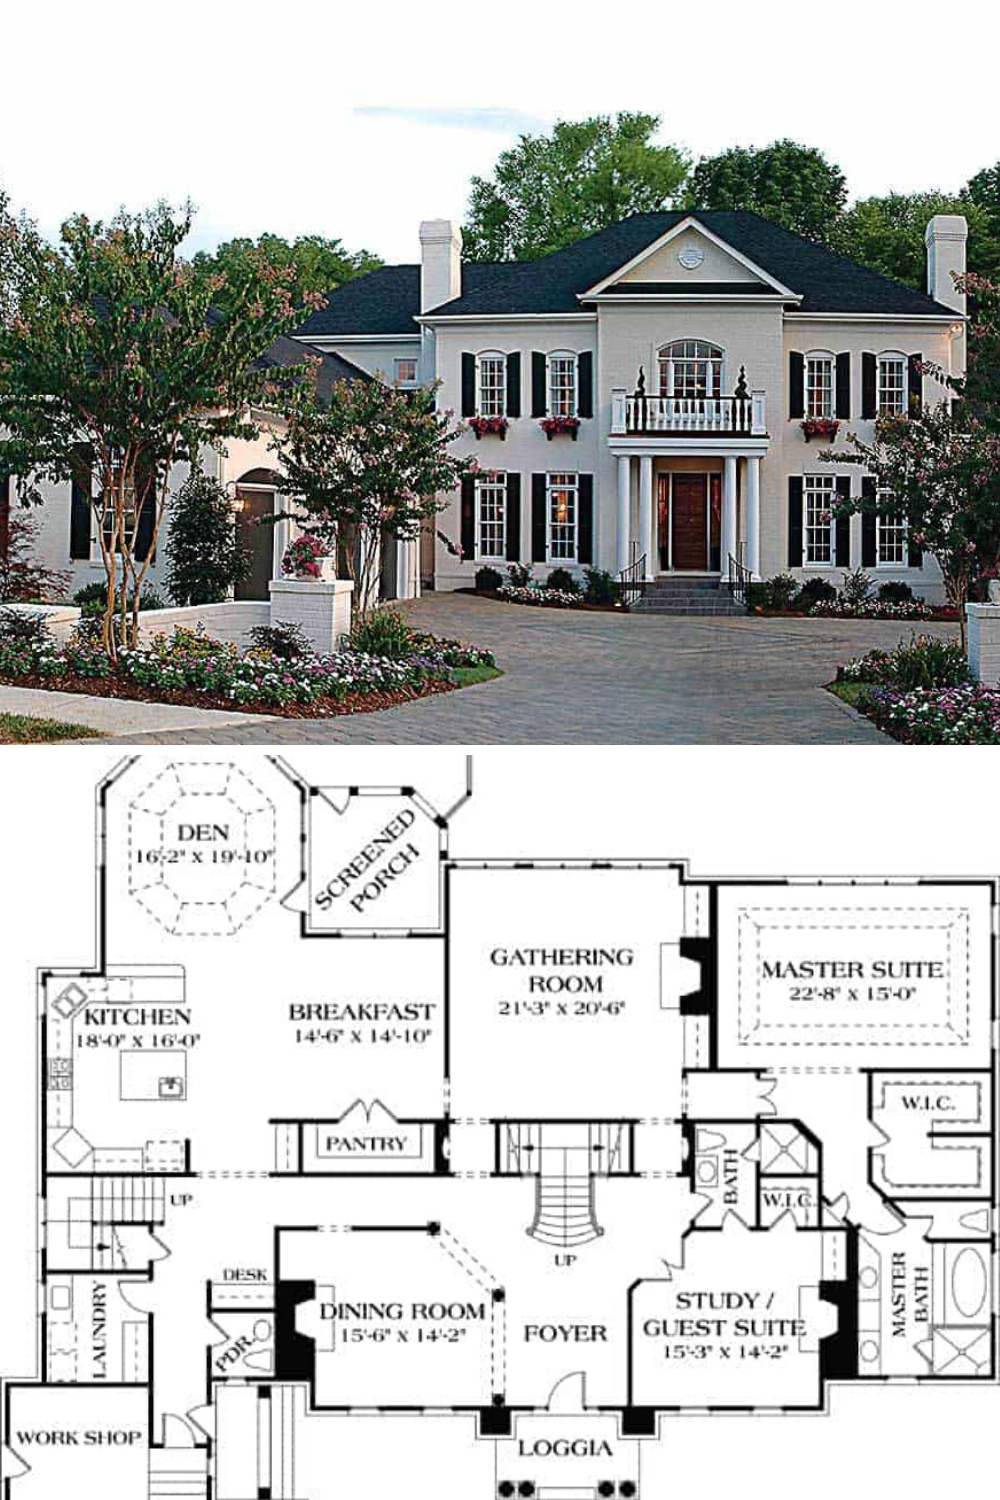 5 Bedroom Two Story Georgian Home with Twin Chimneys Floor Plan